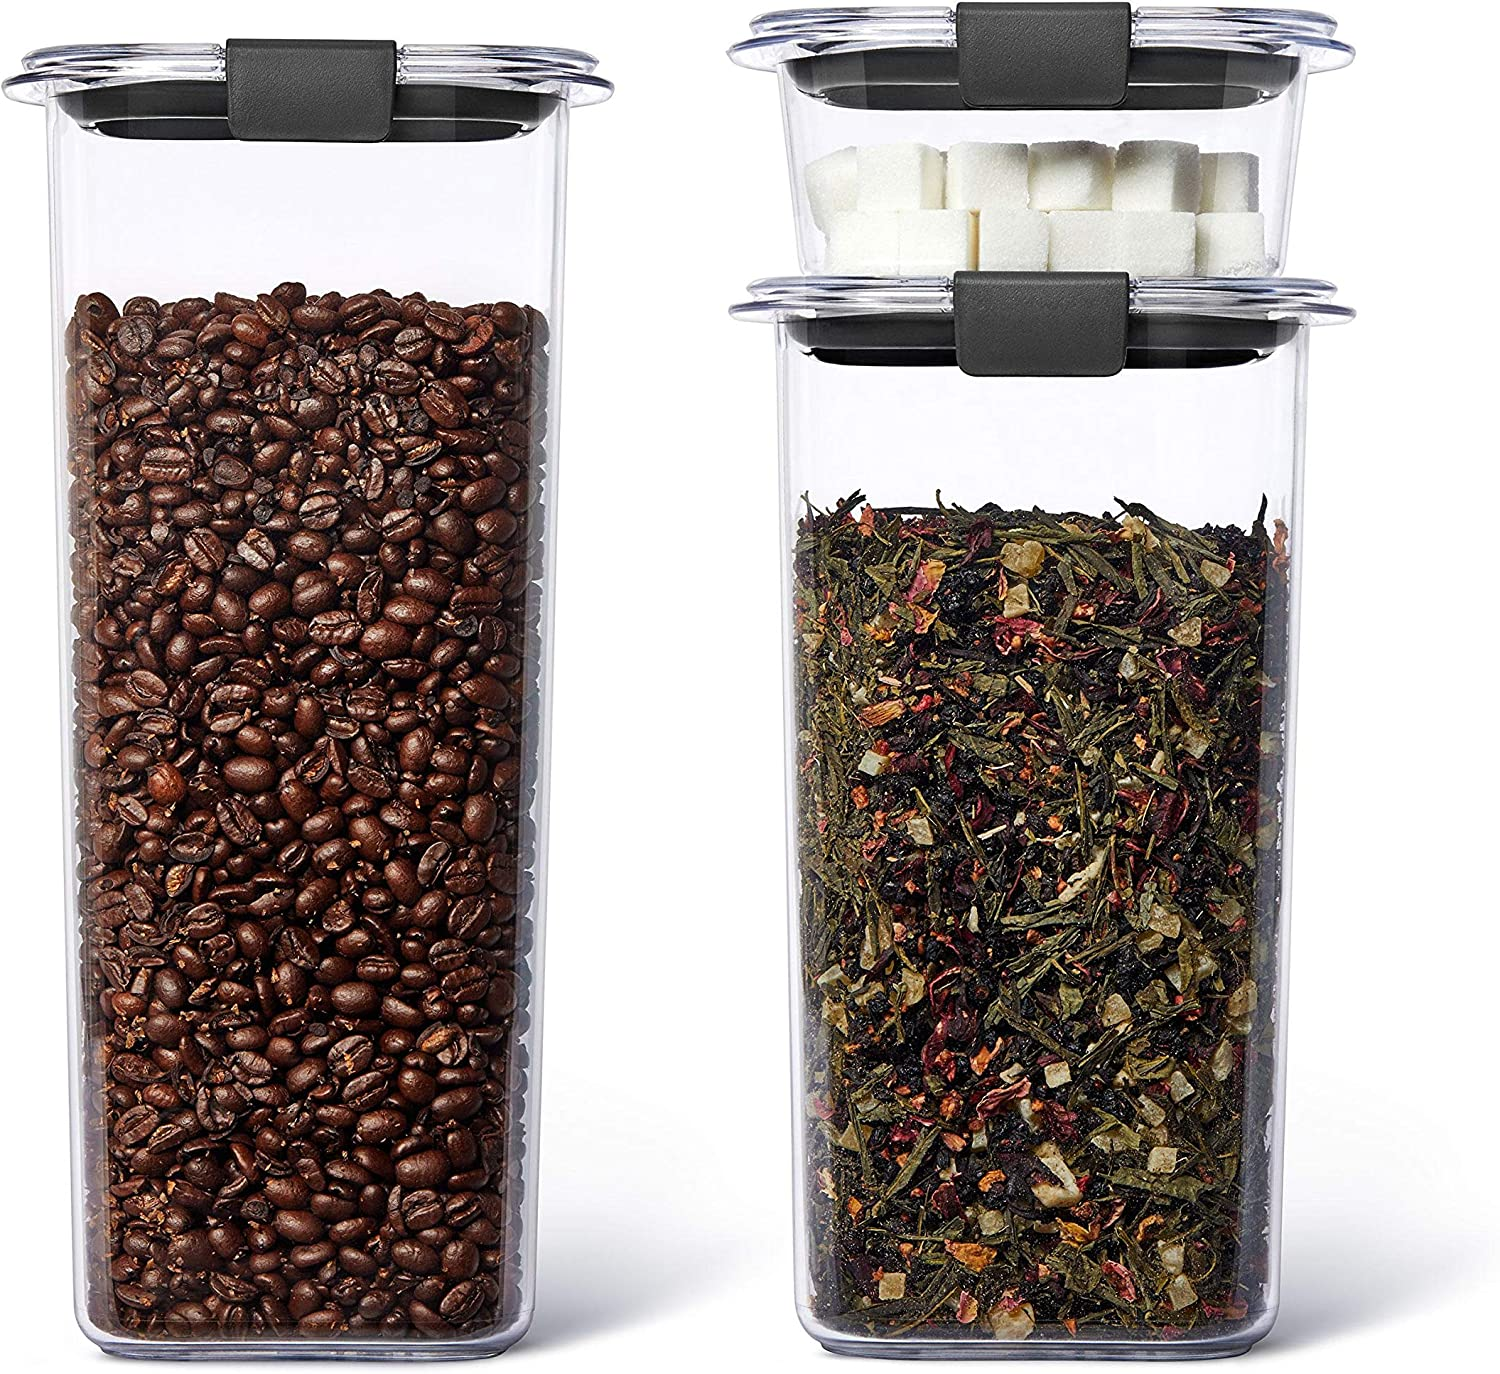 Rubbermaid Brilliance Plastic Food Storage Pantry Grains and Coffee Set of 3 Containers with Lids (6 Pieces Total), Dishwasher Safe, BPA-Free